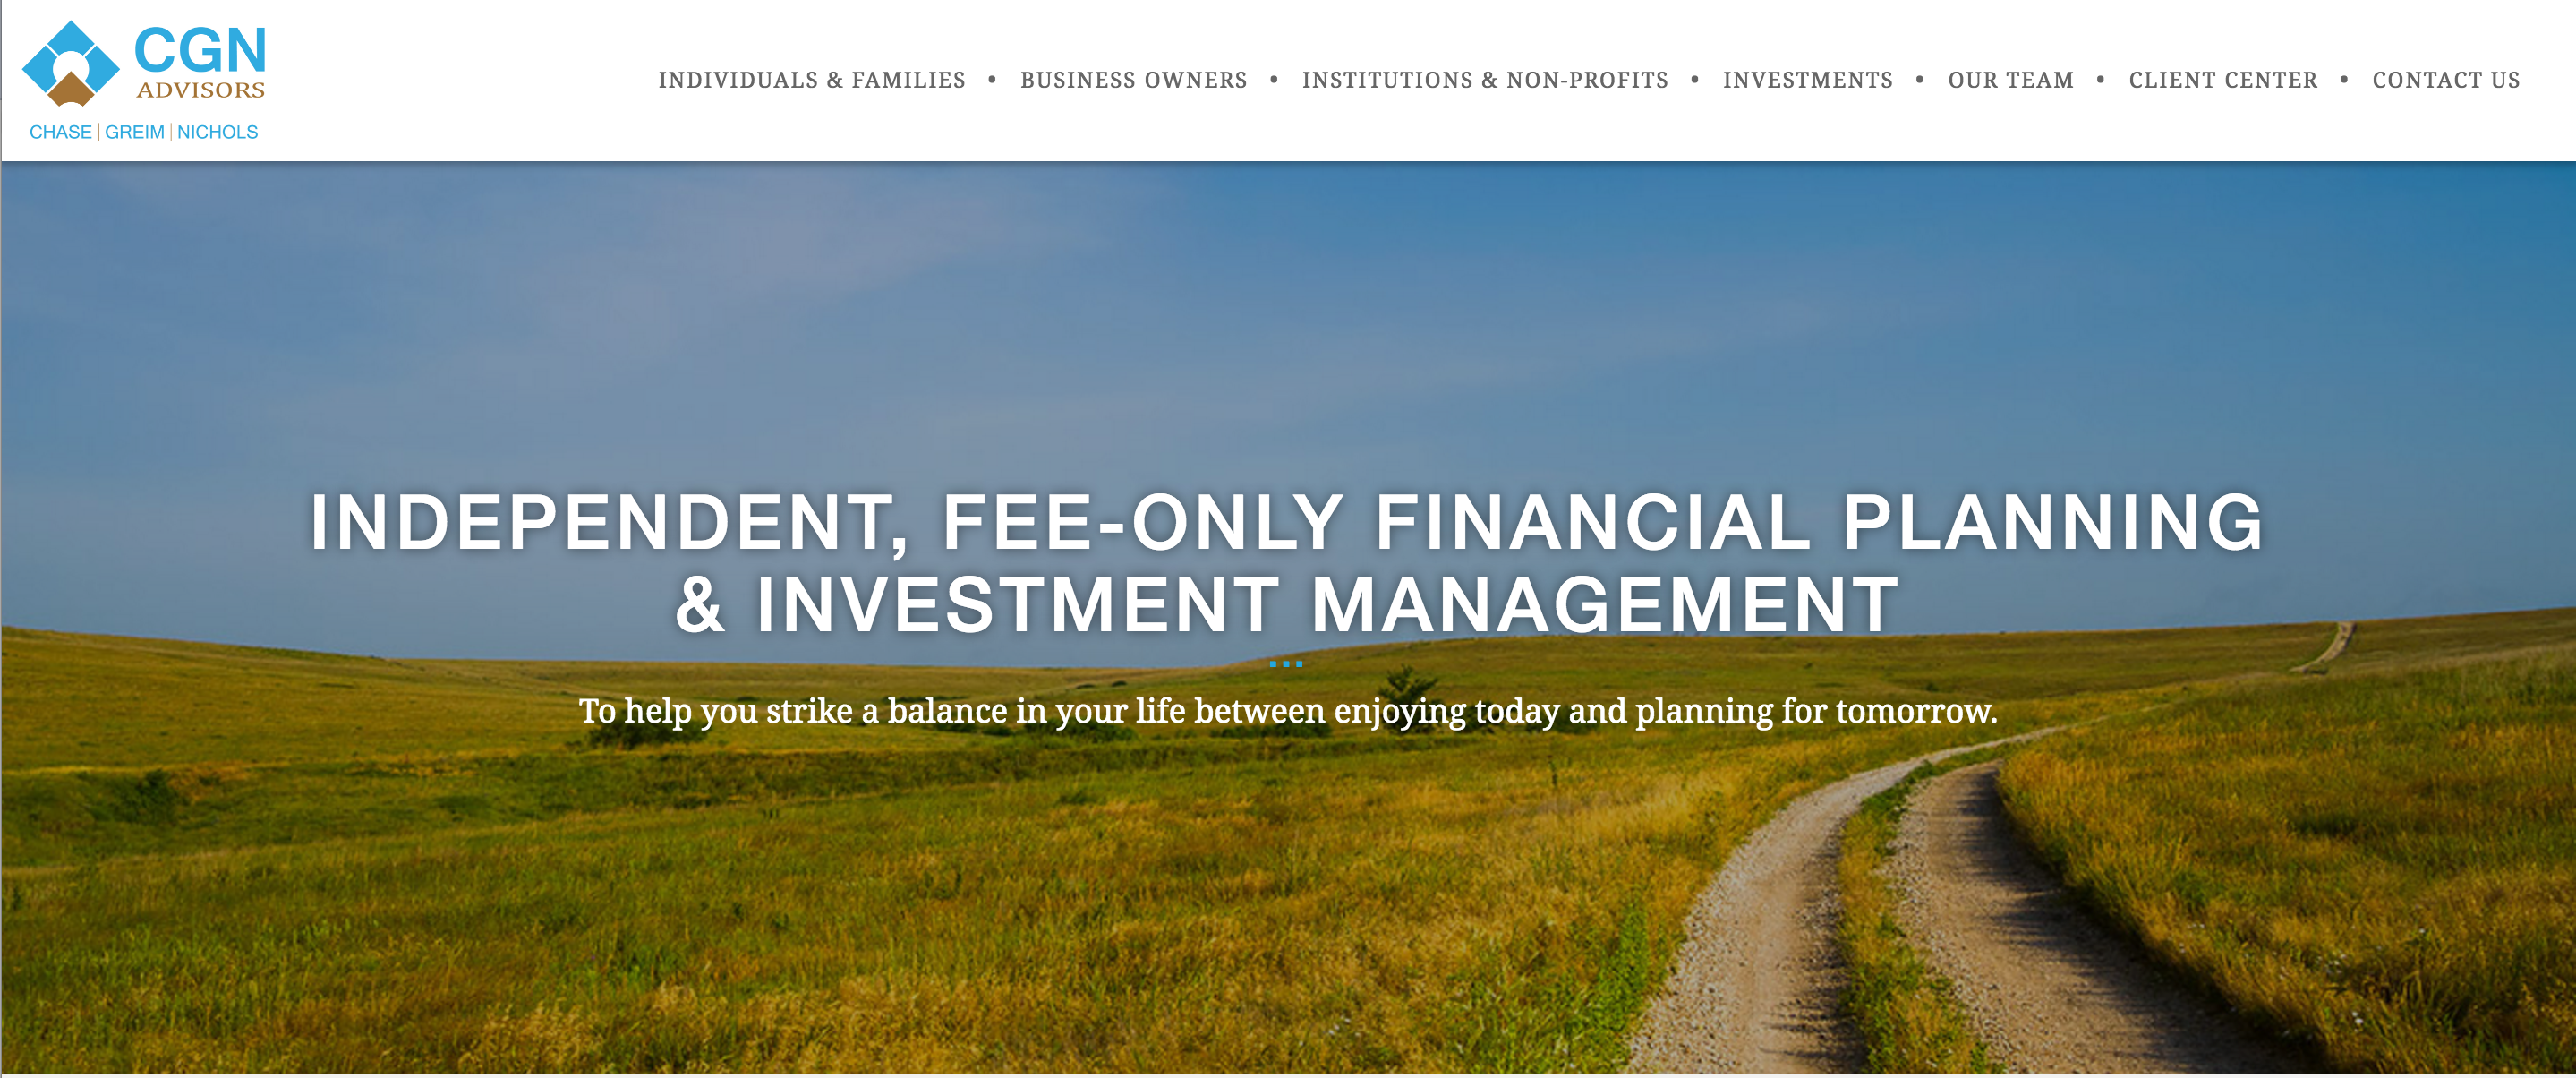 Financial Advisor Website Example: CGN